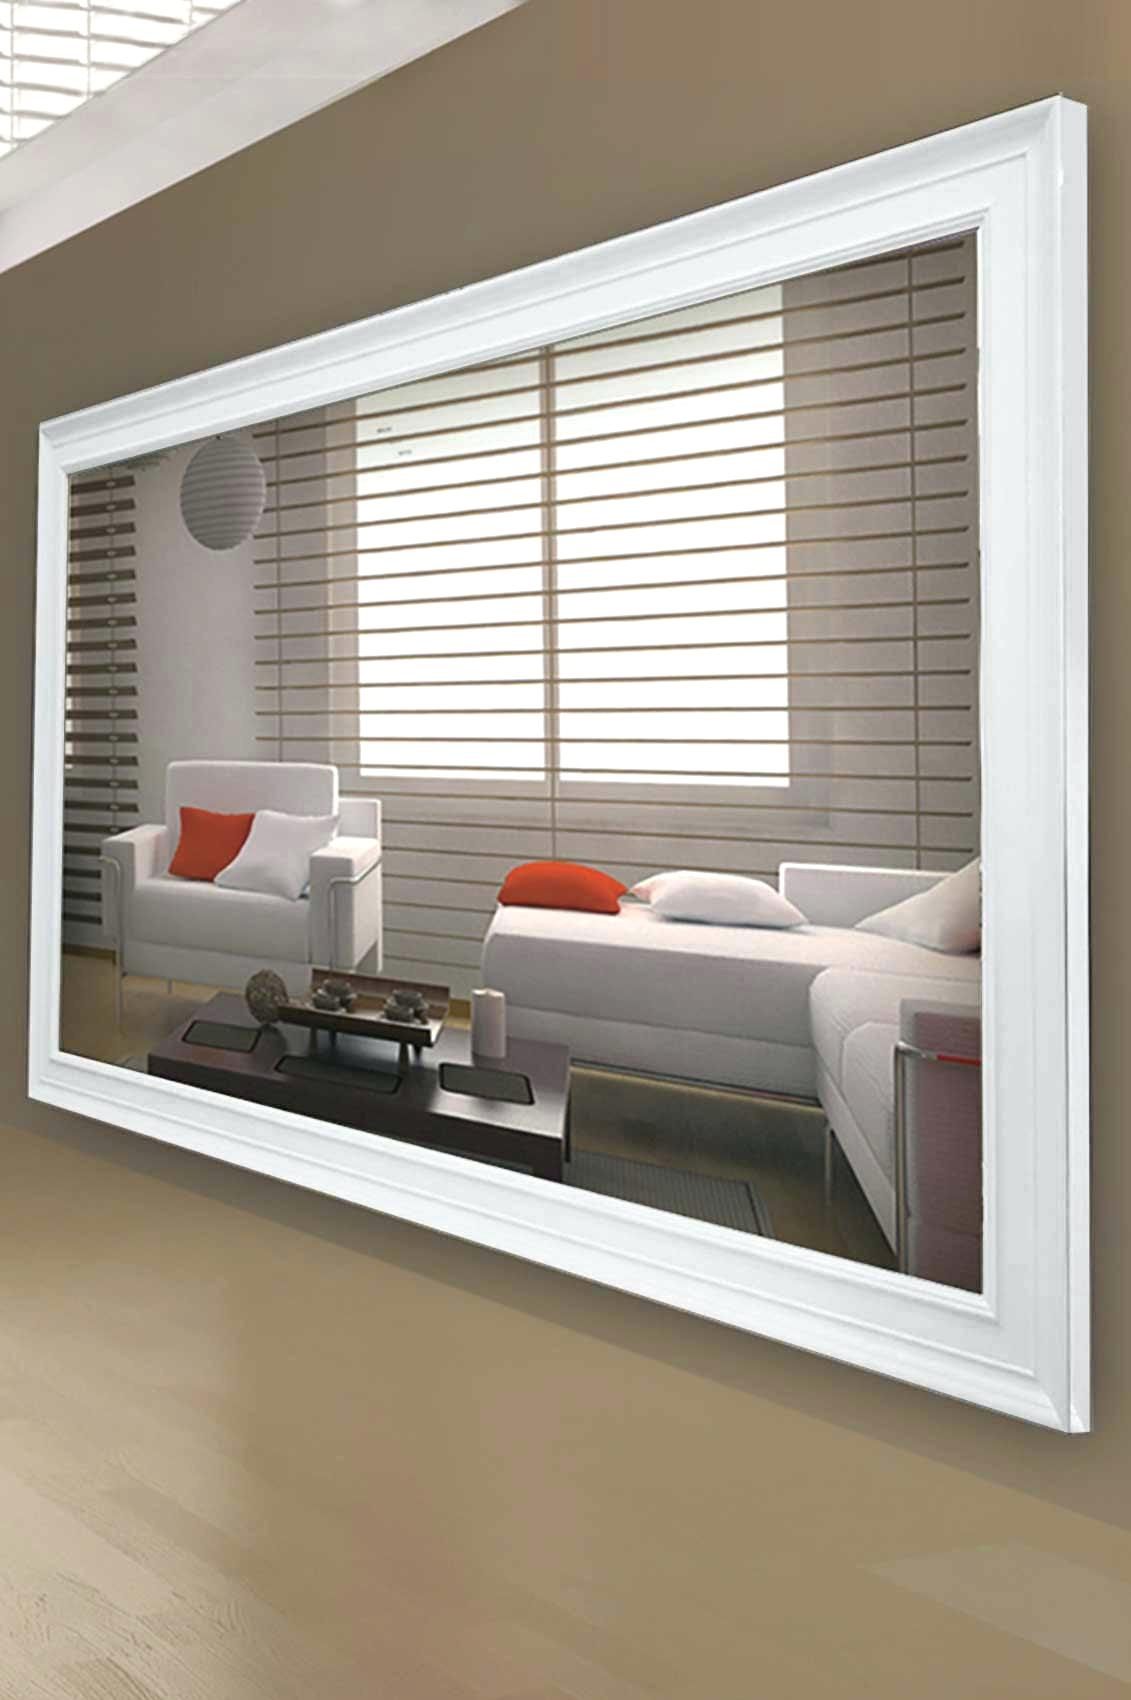 Large Wooden Wall Mirror Wall Mirror Ideas Pertaining To Large Wall Mirrors (Image 12 of 15)